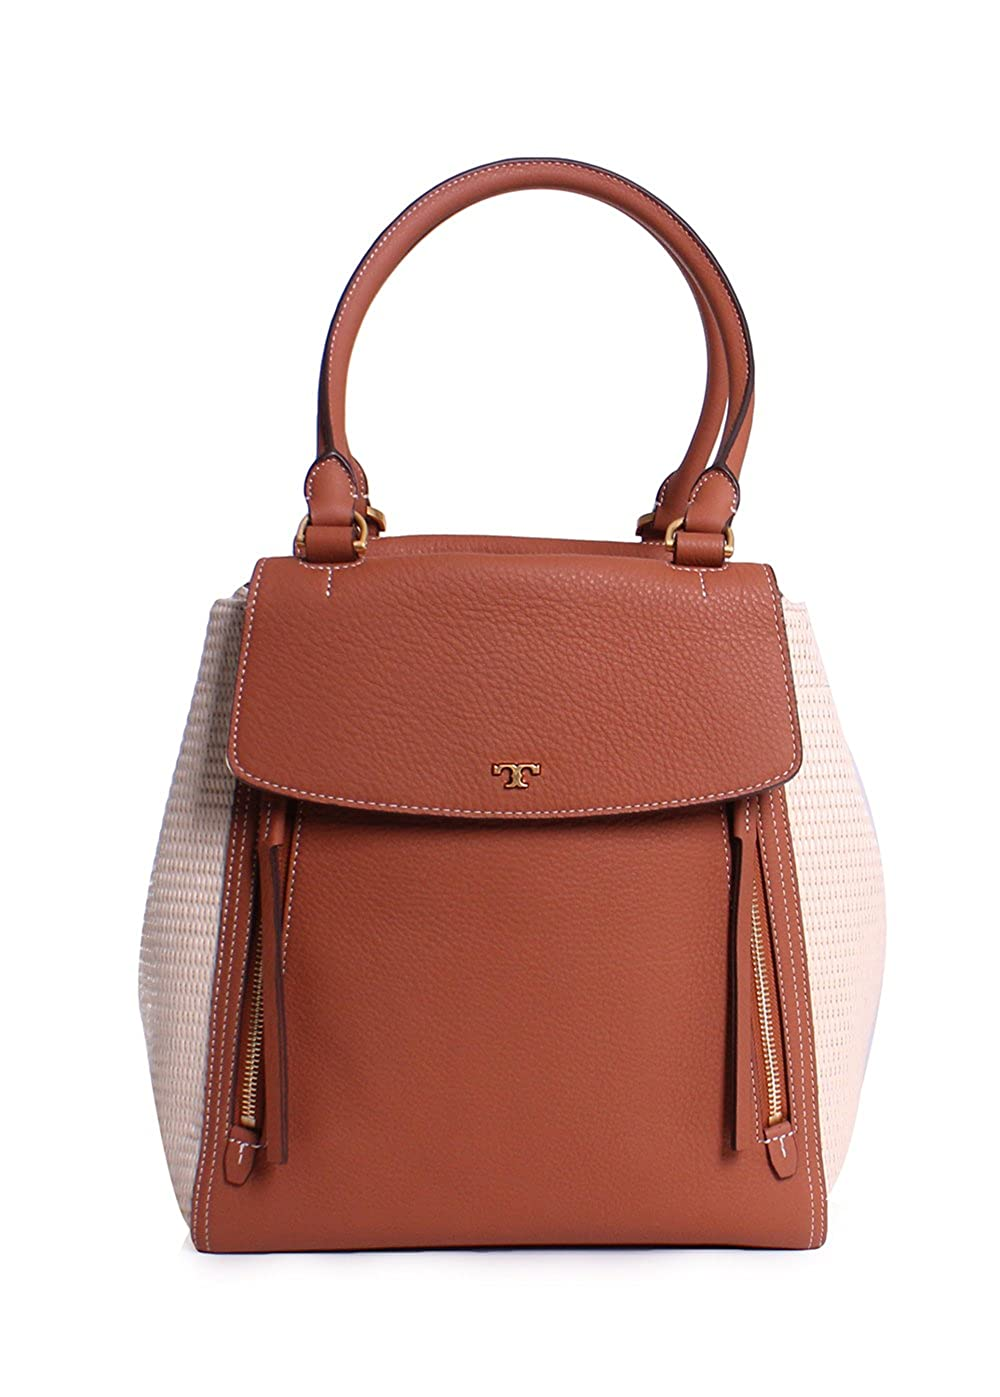 2b077a52c453 Amazon.com  Tory Burch Half Moon Straw Leather Tote Handbag in Natural  Classic  Clothing